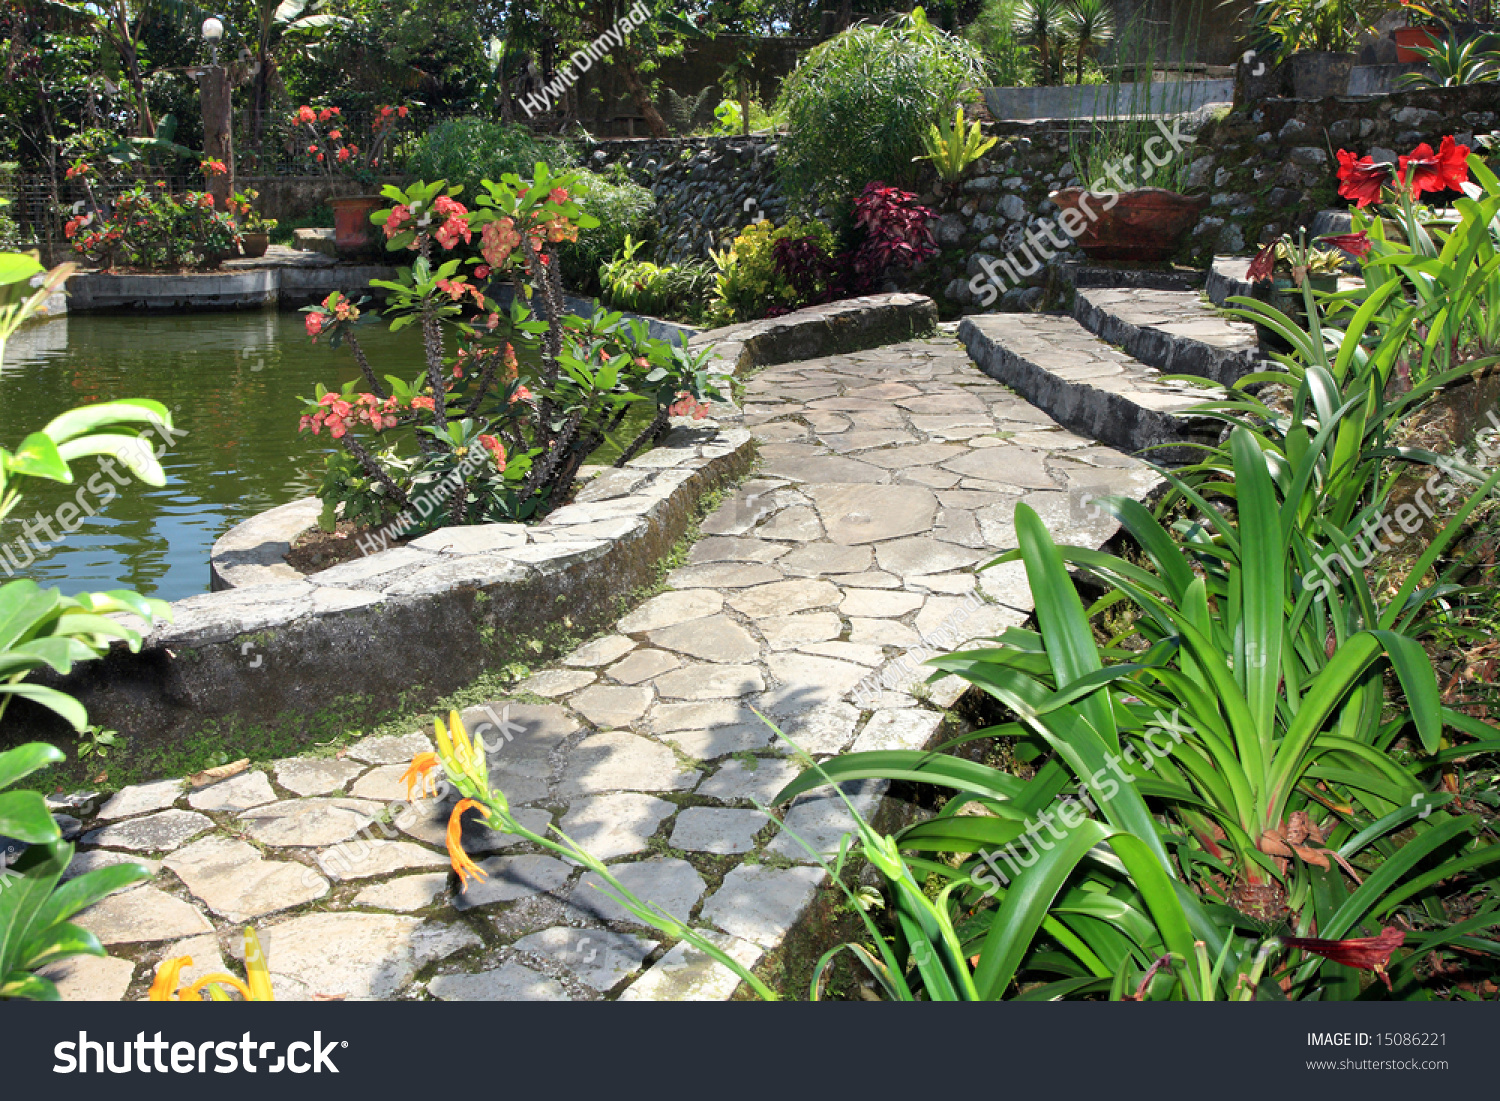 Beautiful natural gardens - Beautiful Natural Garden With Pond